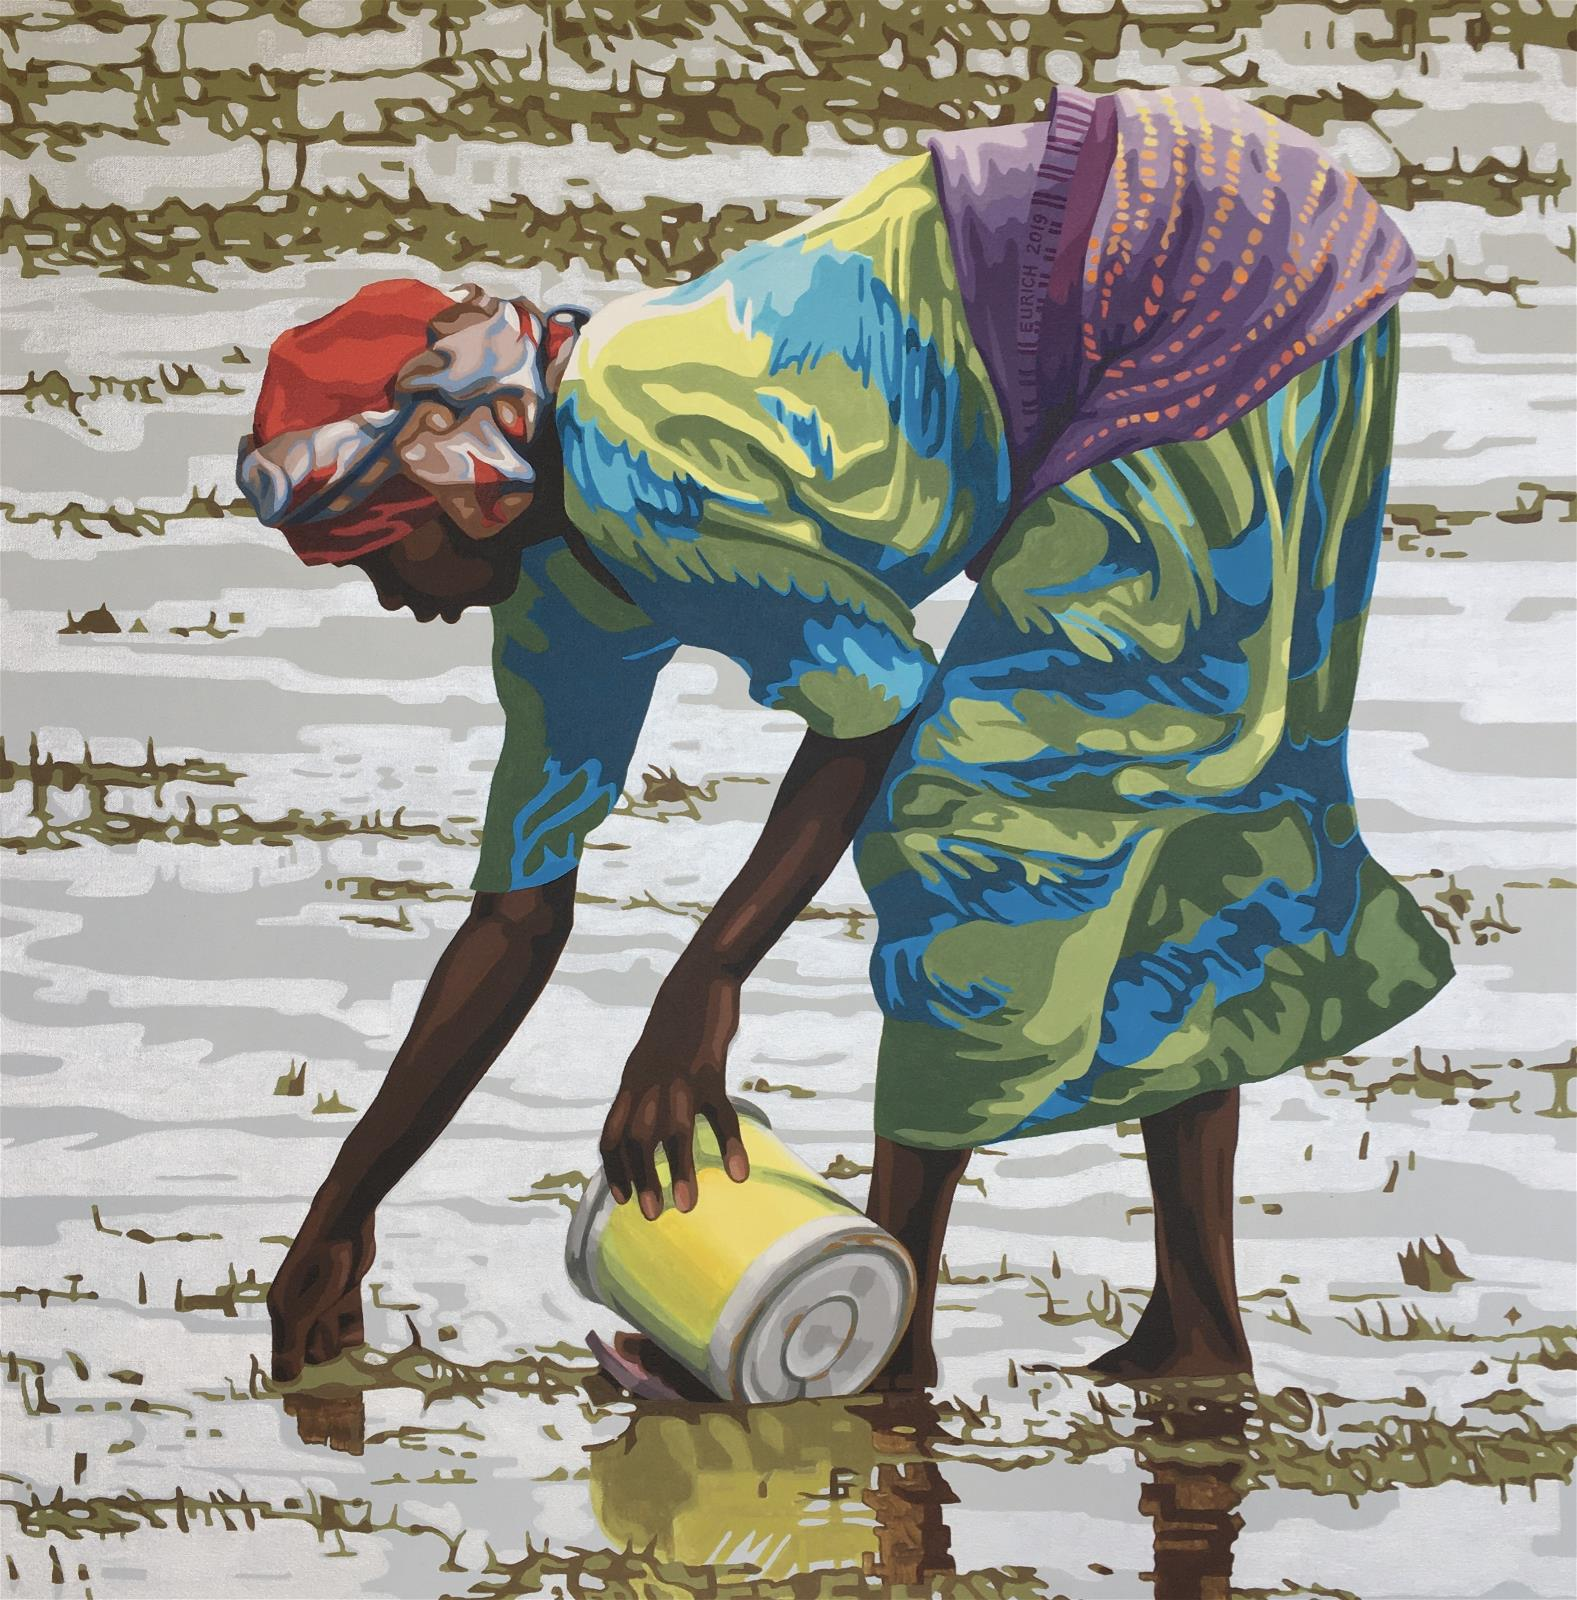 Collecting Shellfish at Low Tide, Zanzibar #2